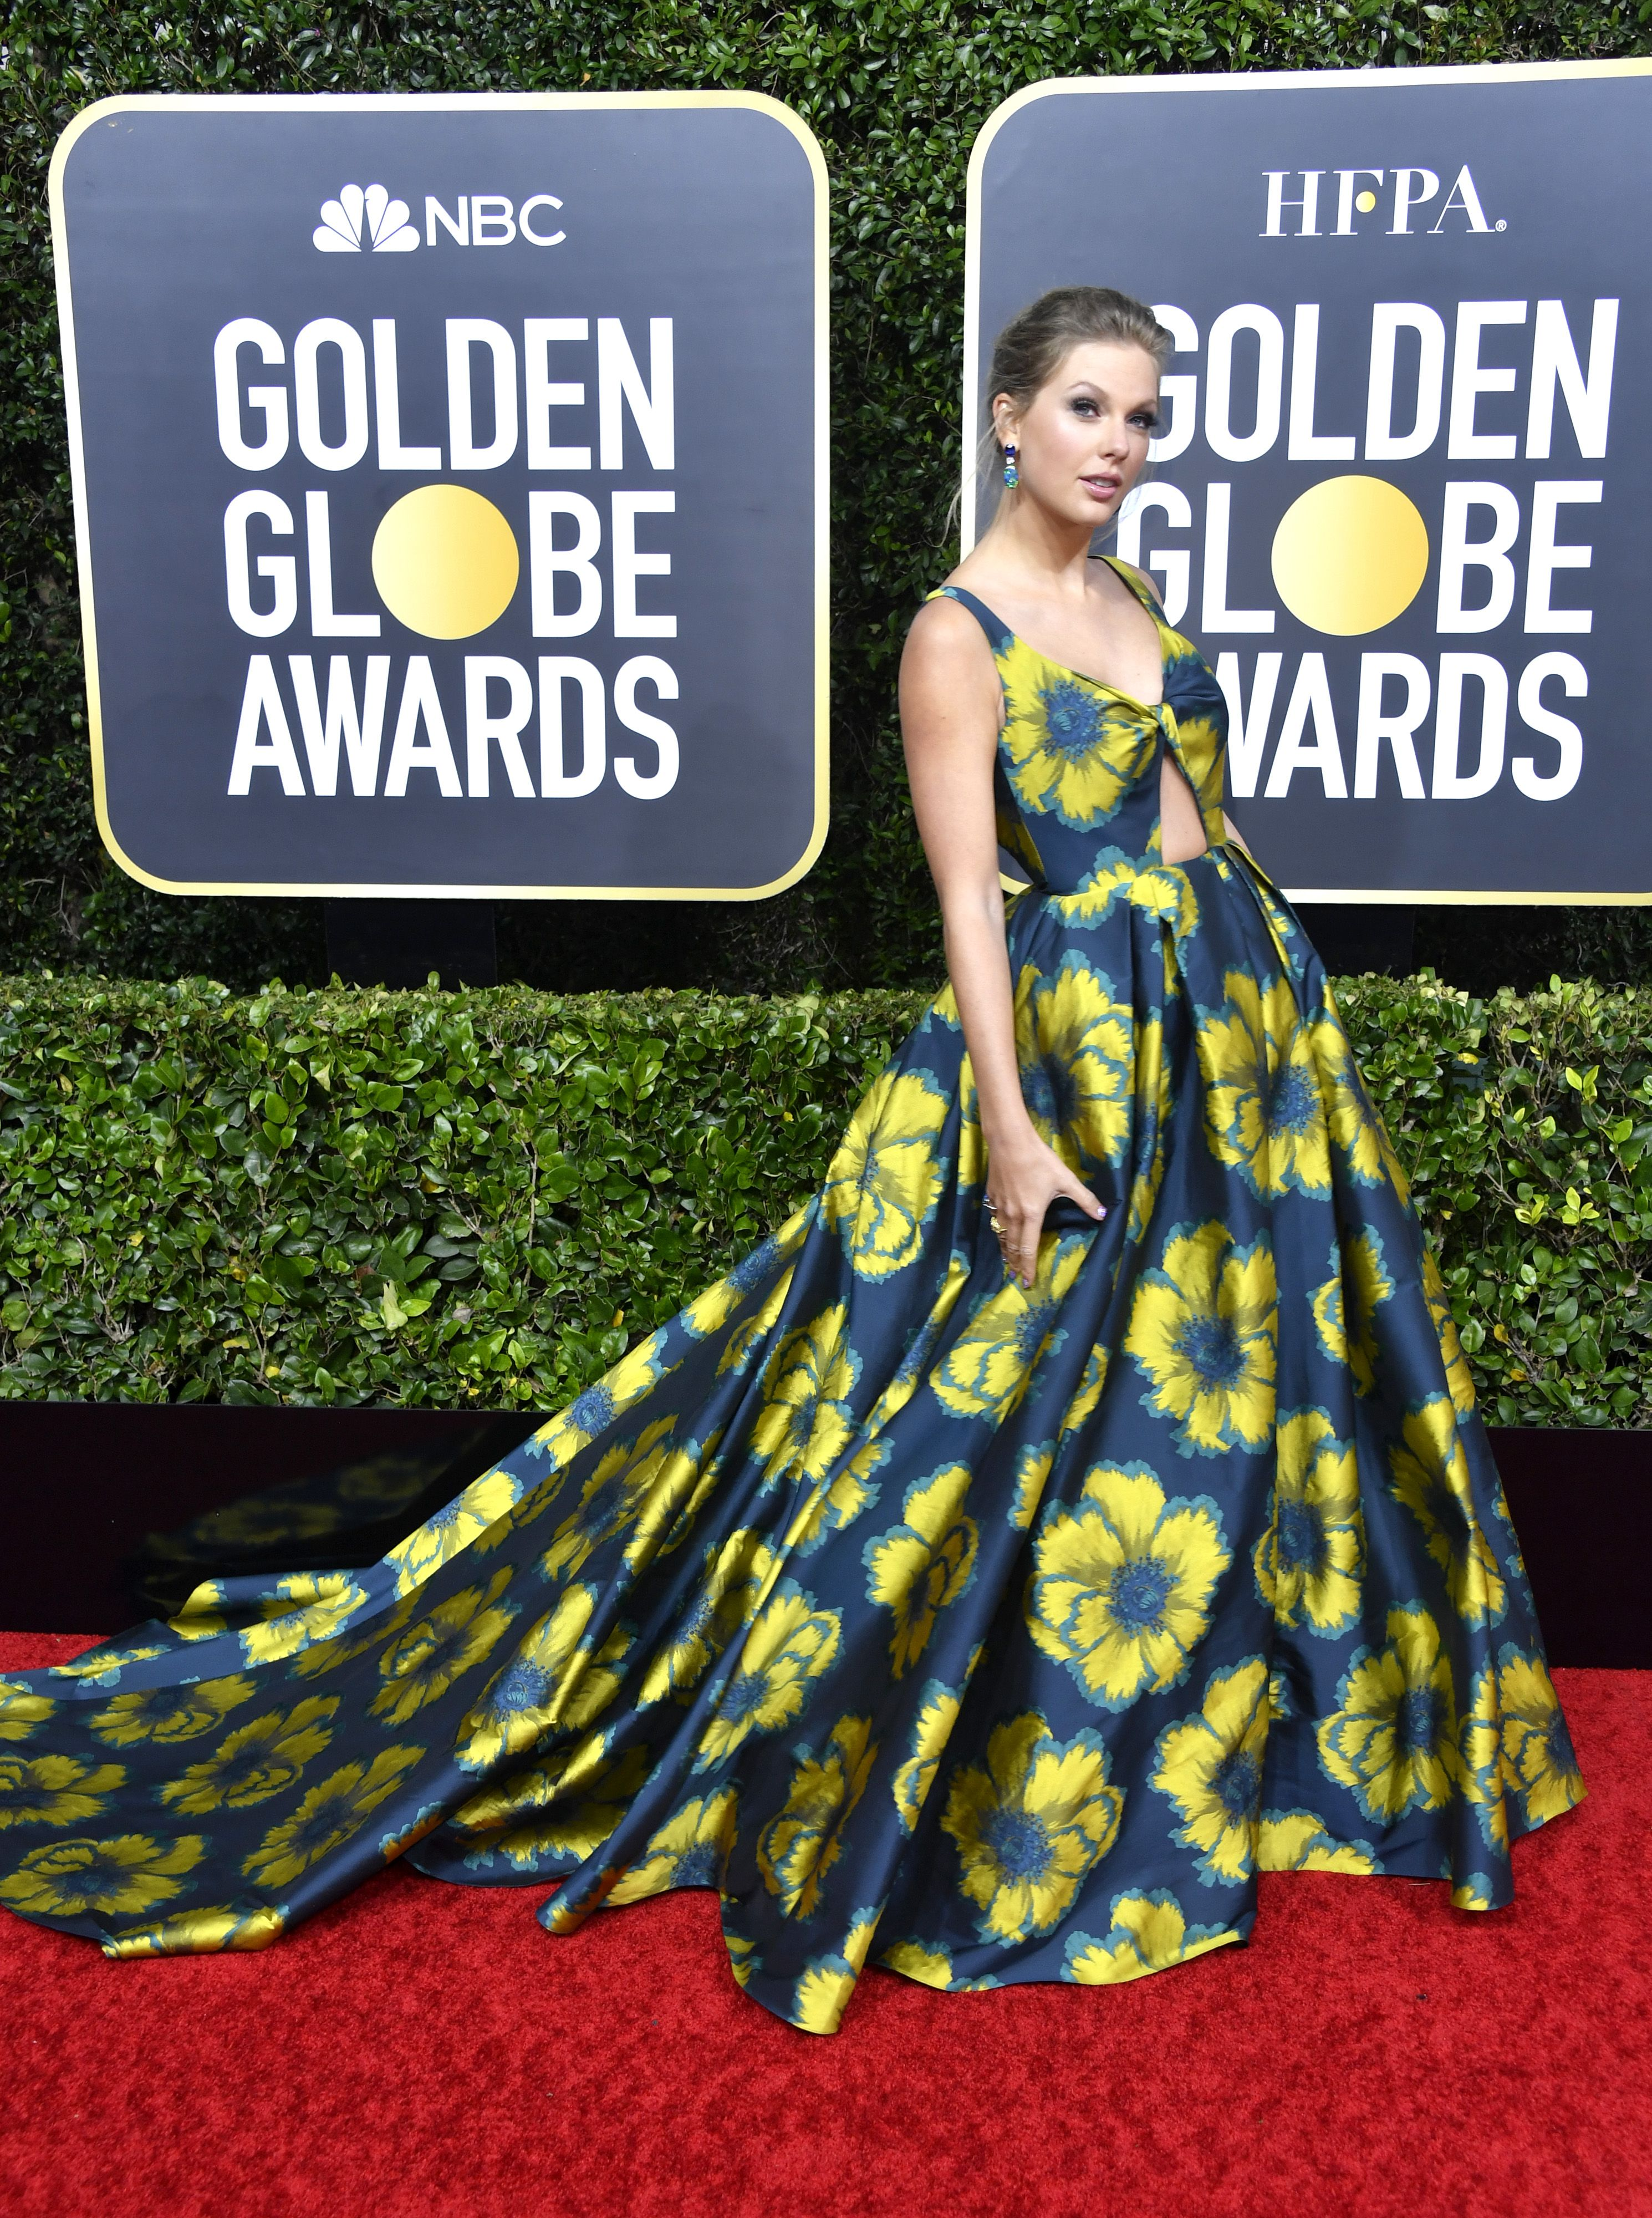 Golden Globes 2020 Best Dressed , Celebrity Fashion on the